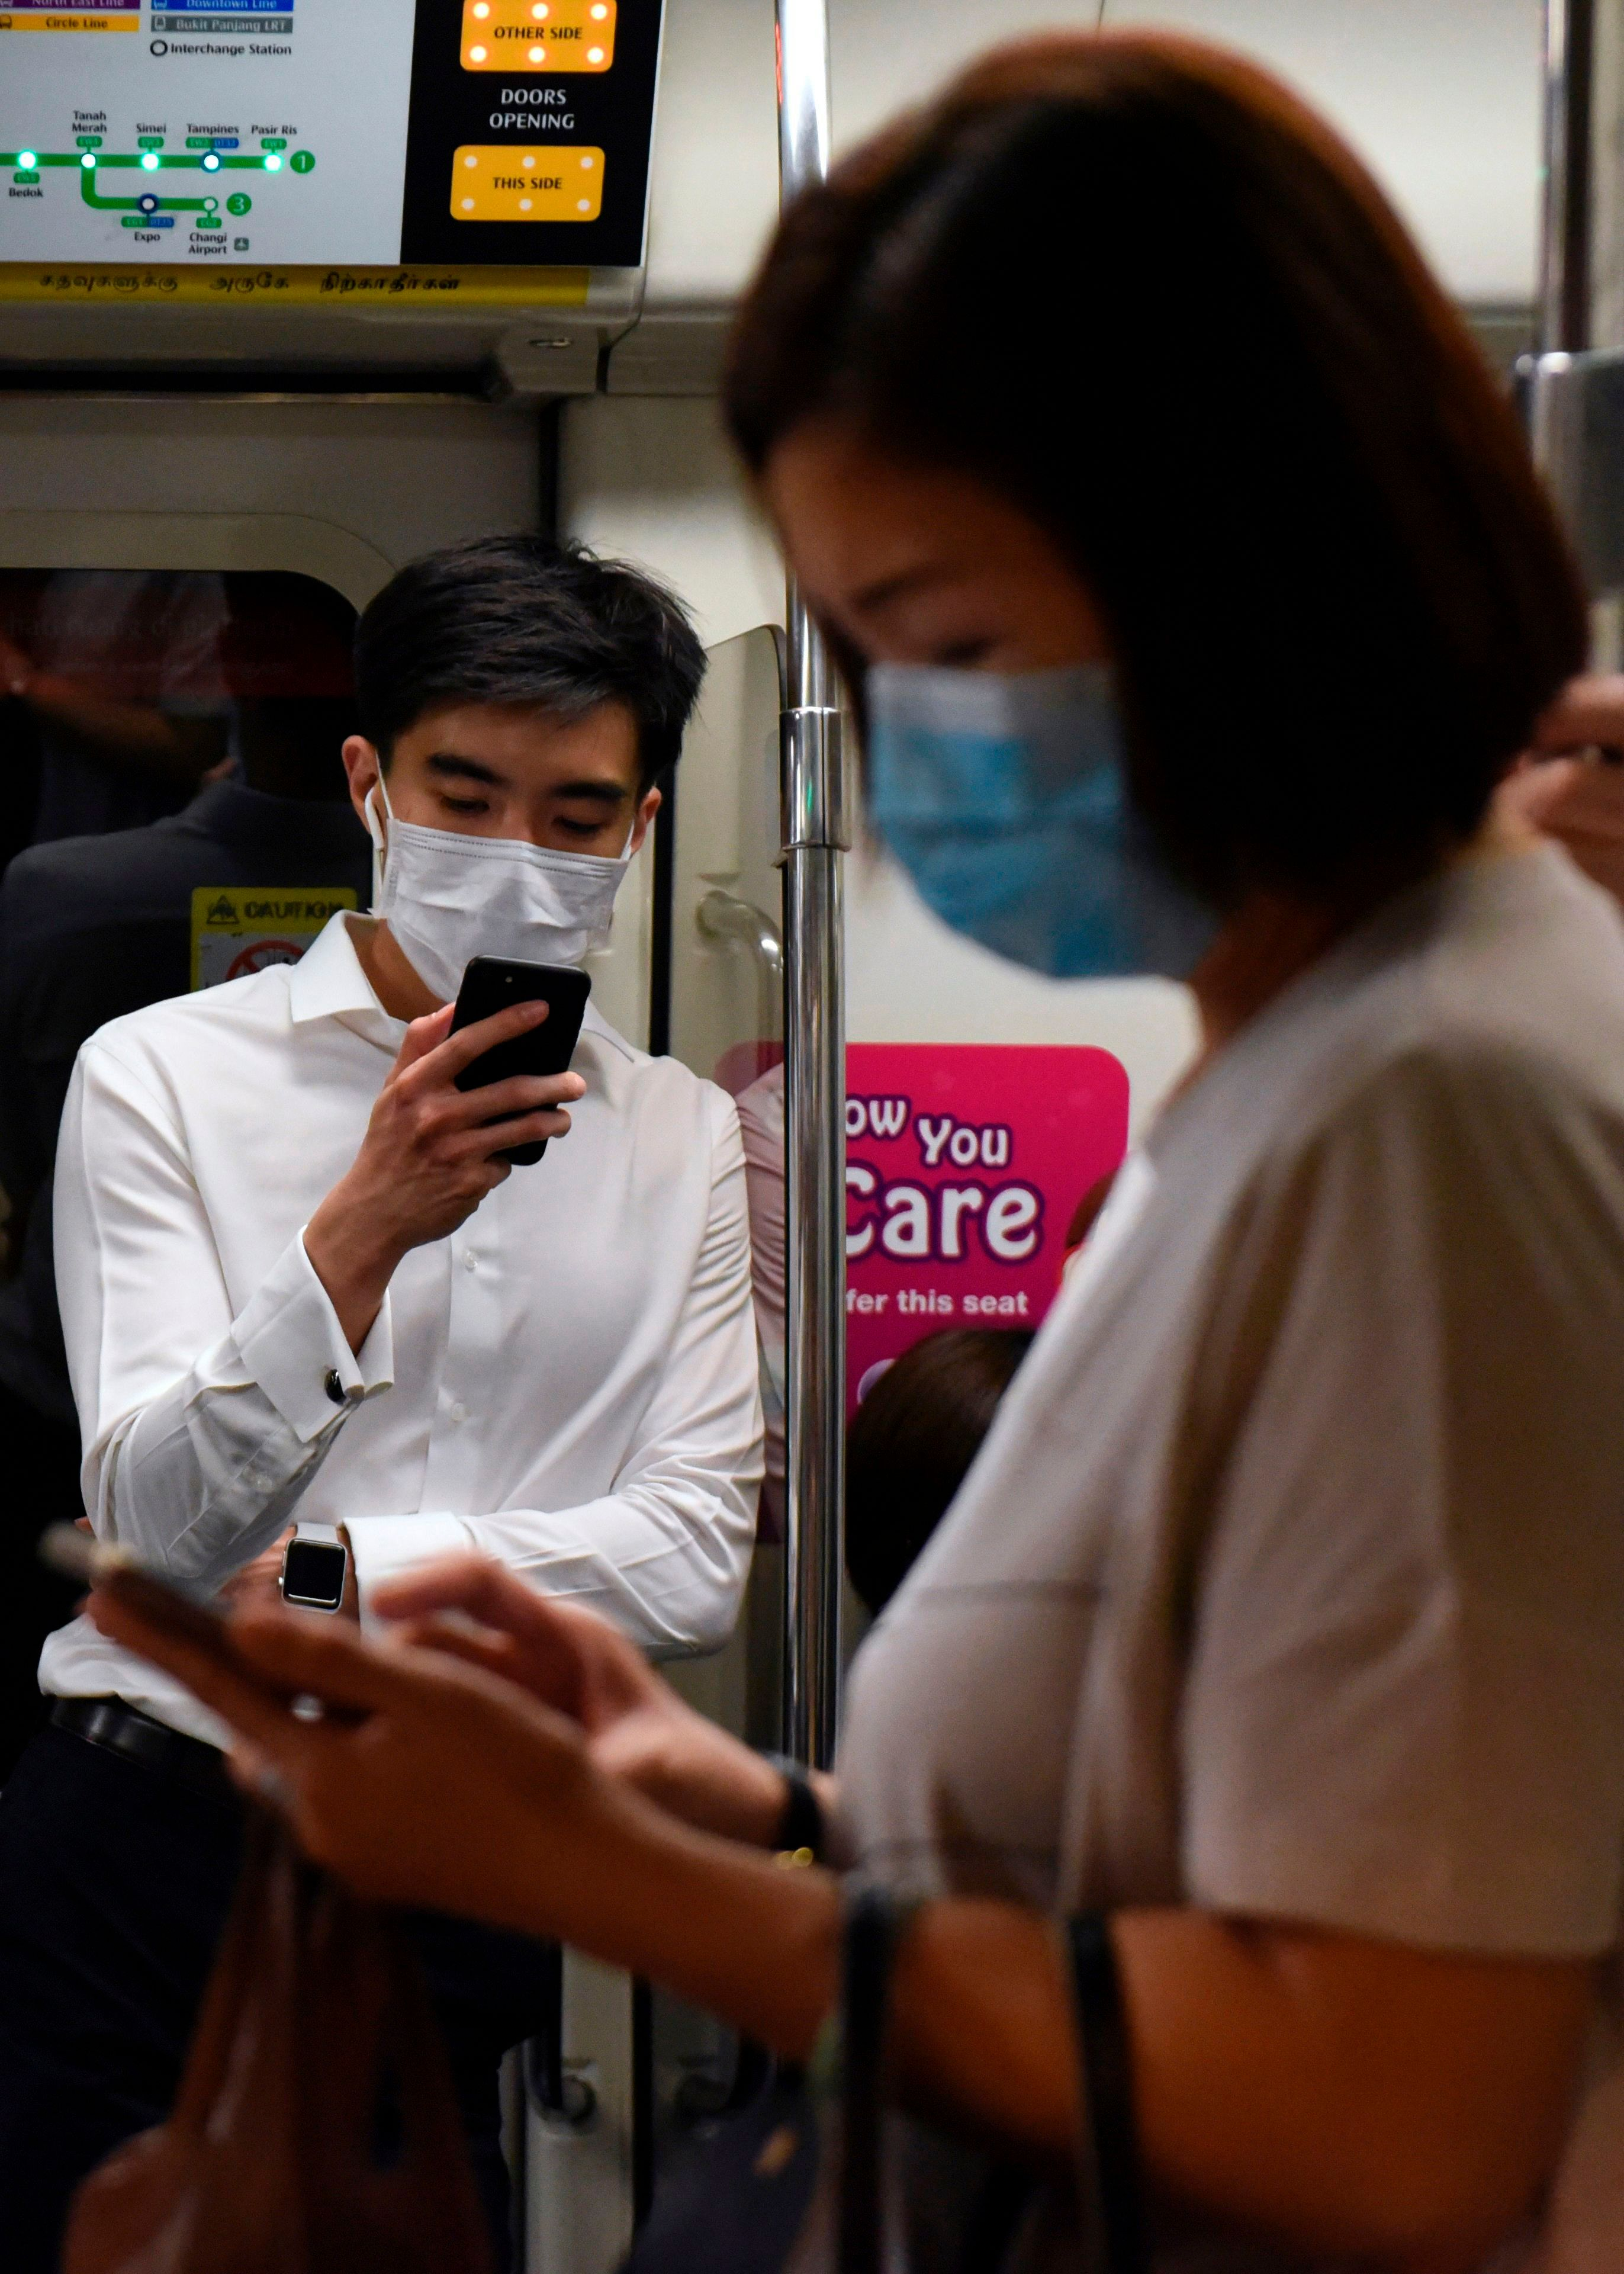 Officials in Singapore appear to have slowed the spread of the bug by acting quickly to protect citizens